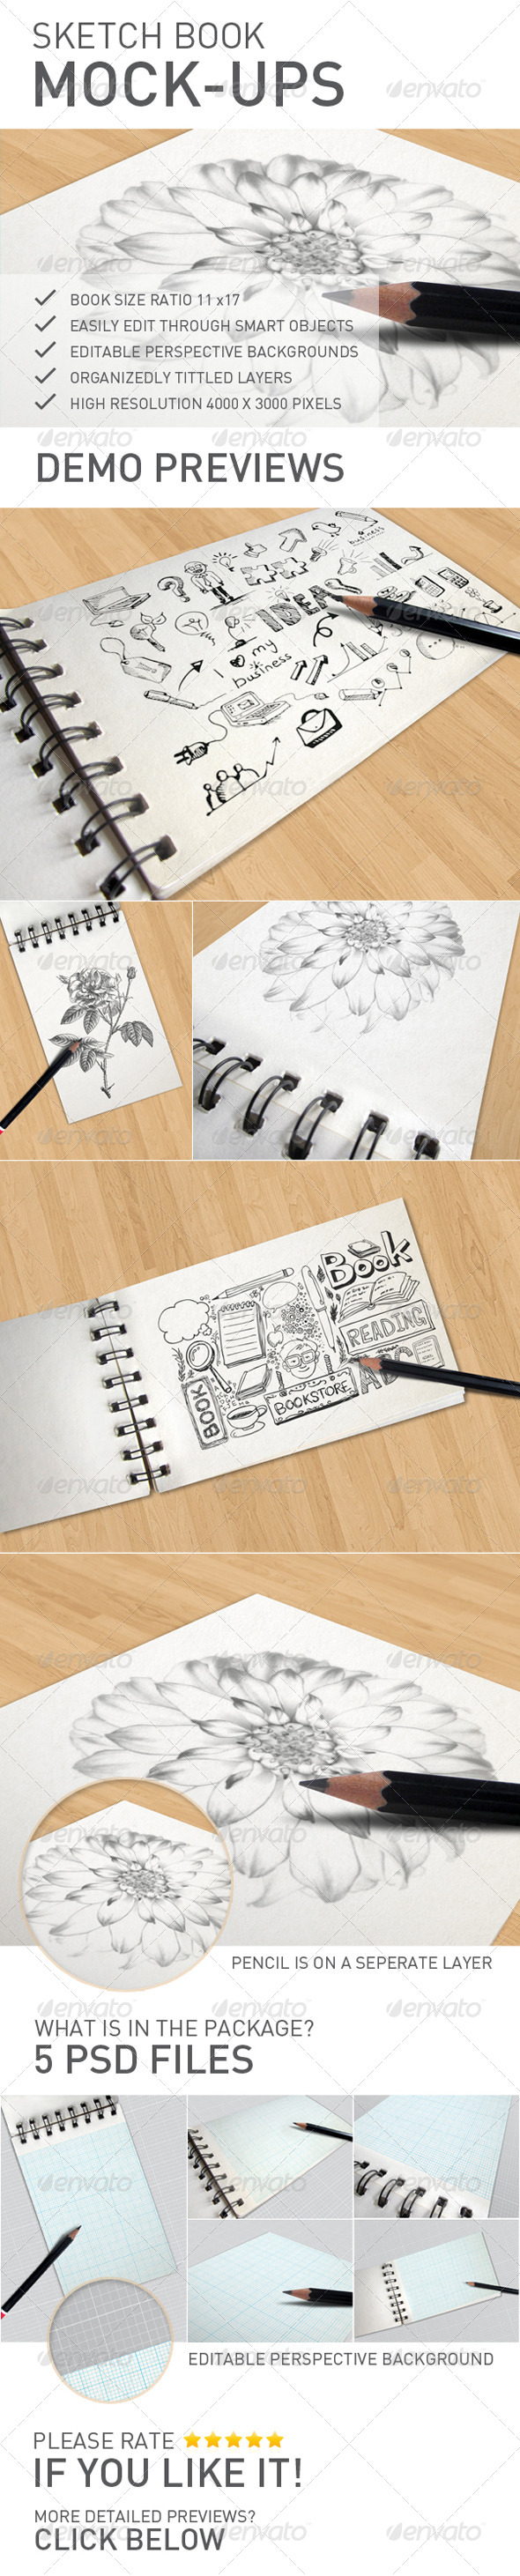 GraphicRiver Sketch Book Mock-ups 7510014